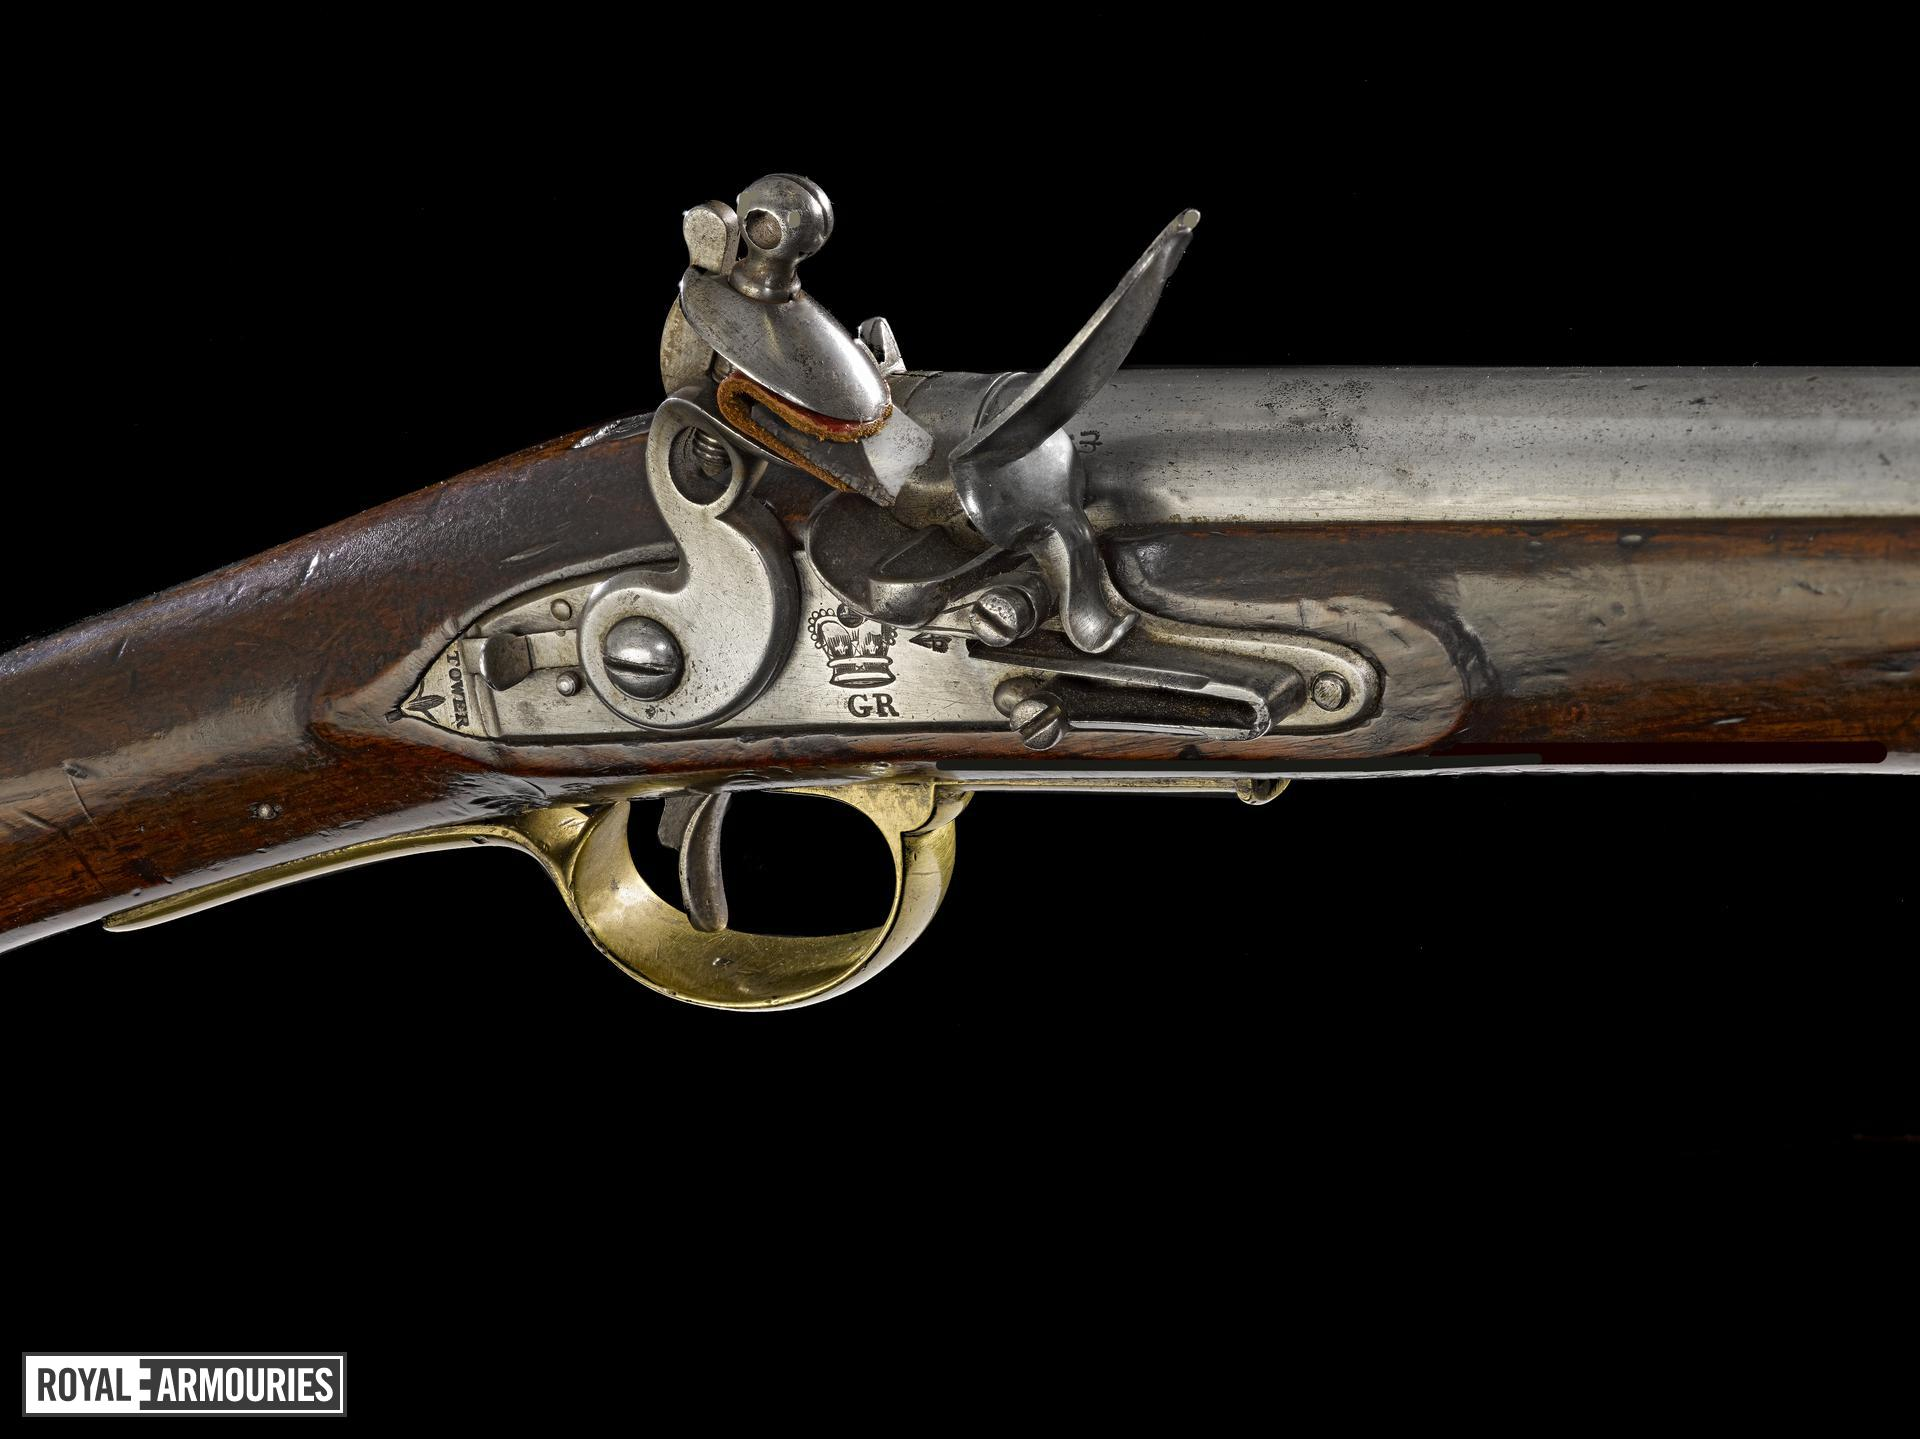 Paget flintlock muzzle-loading military carbine, 1800-1830, Britain (XII.991)